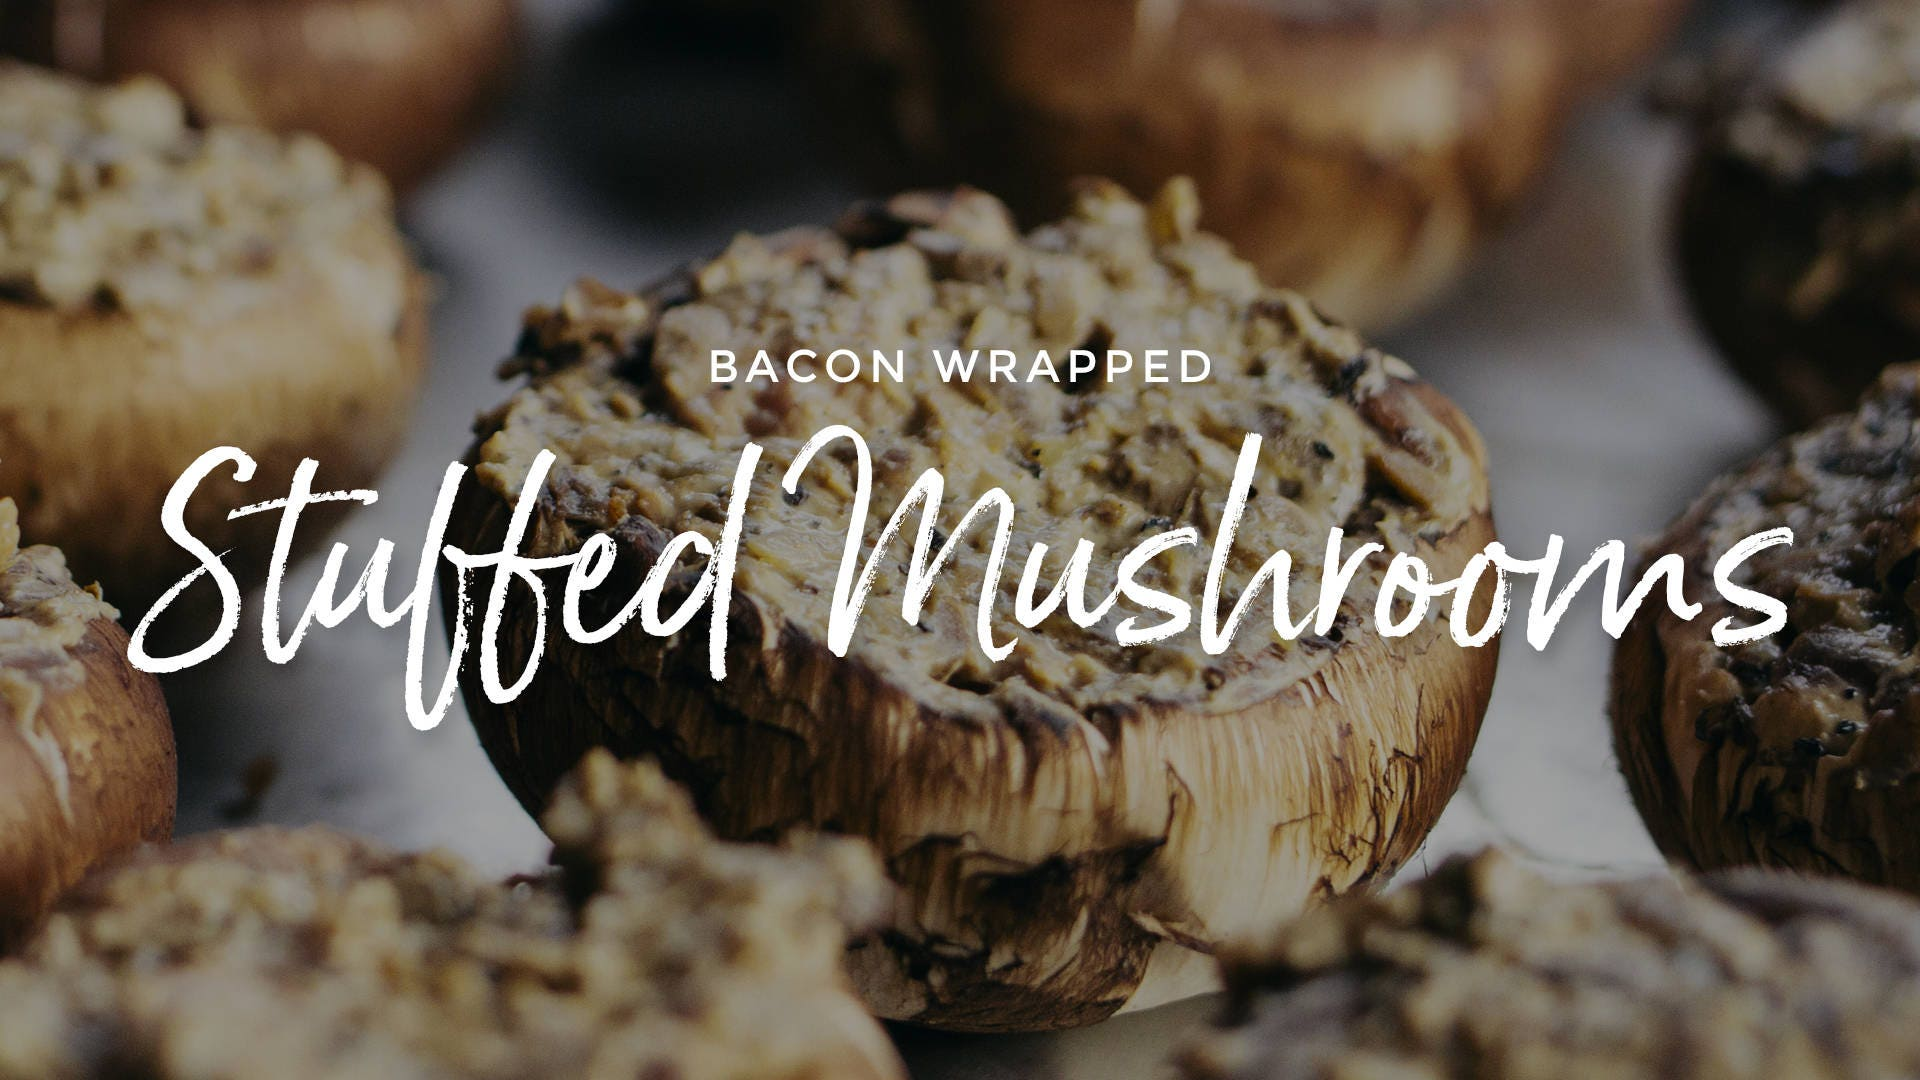 Bacon Wrapped Steak Stuffed Mushrooms Recipe